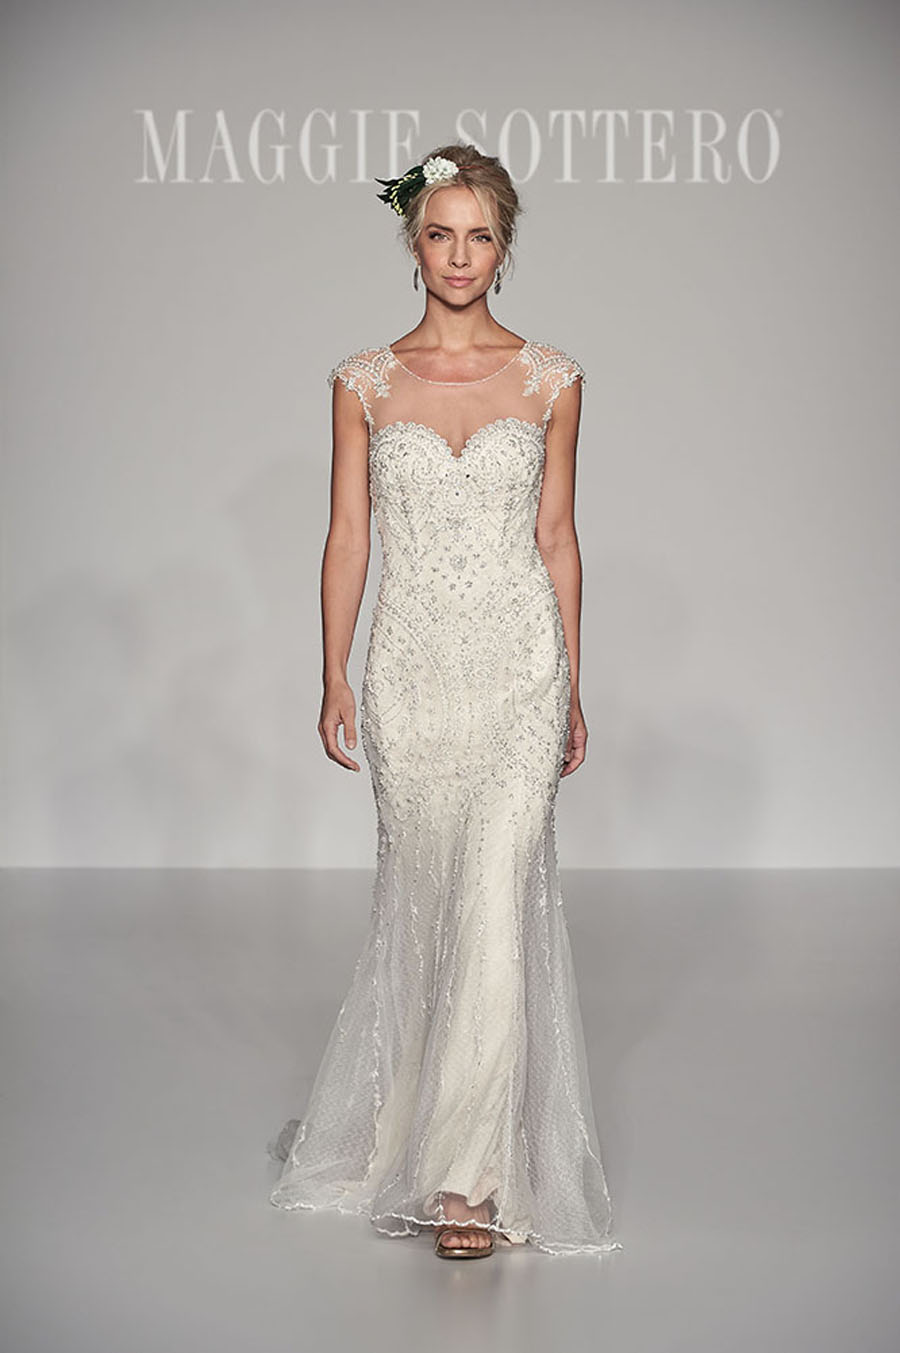 Maggie Sottero Spring 2017 Collection - Petra